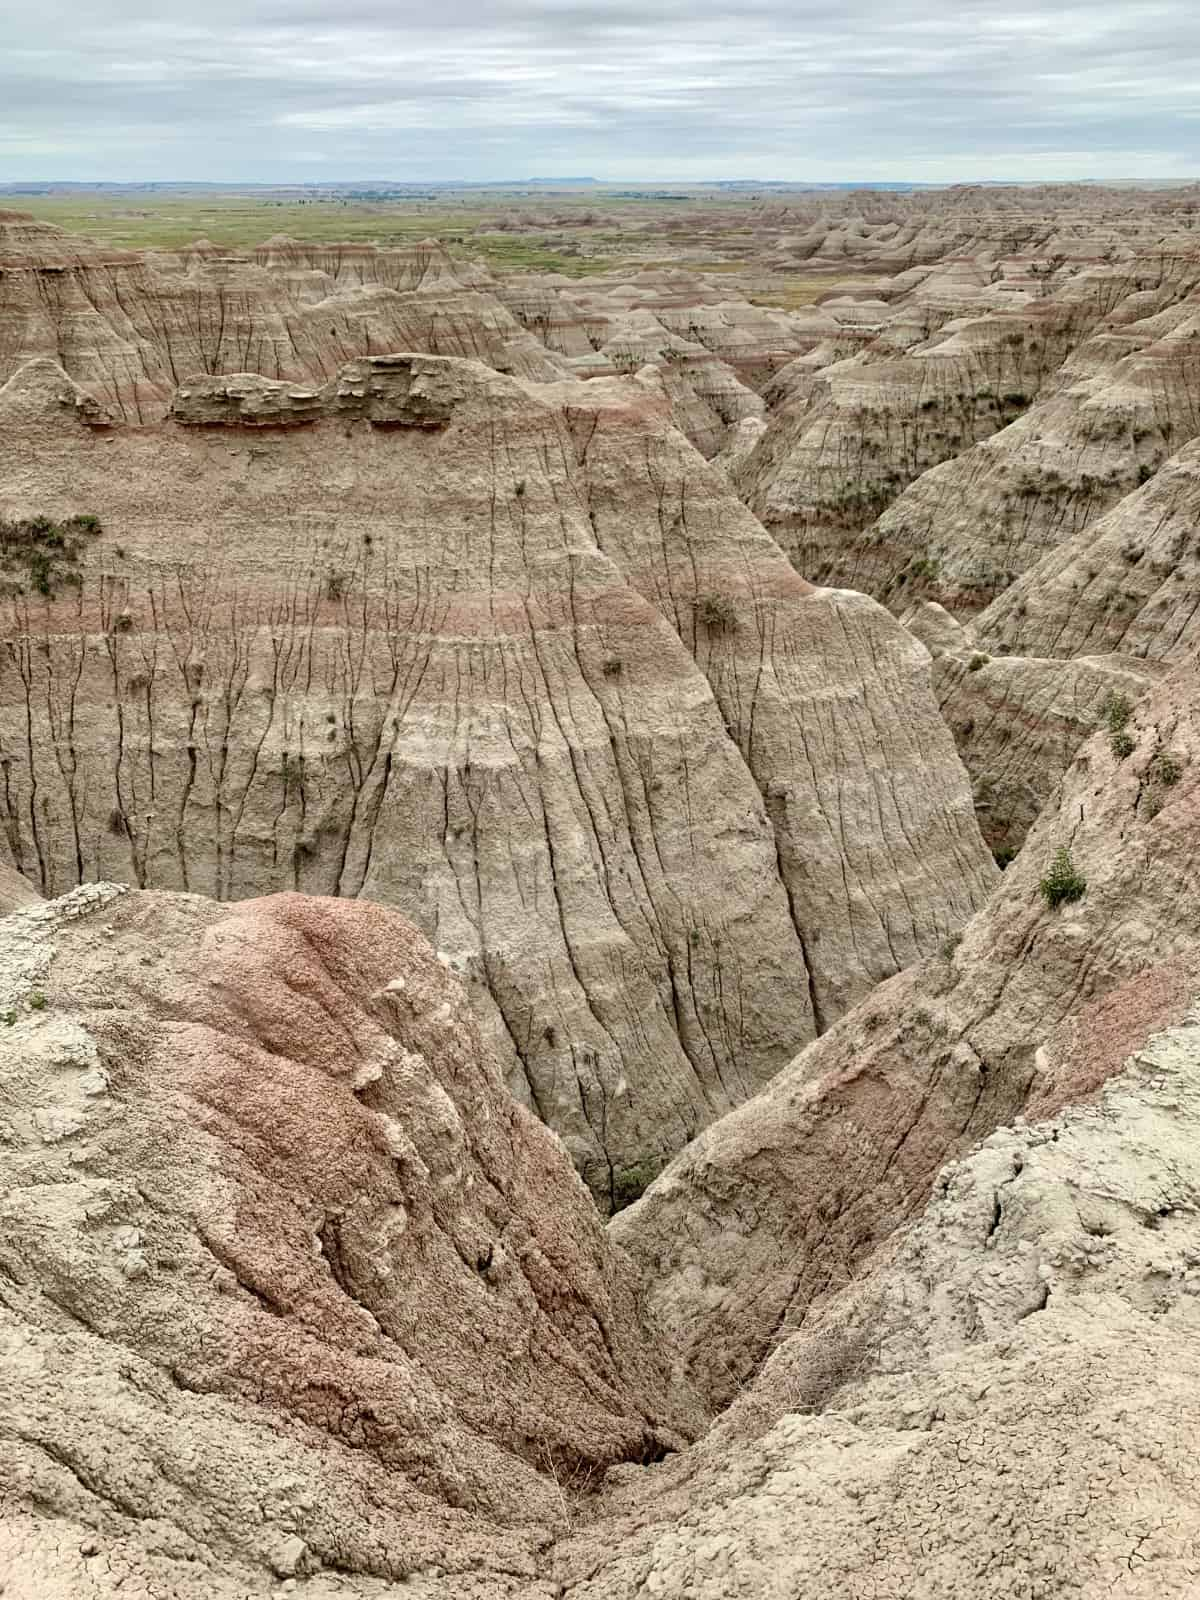 Planning a Trip to Badlands National Park | Why a roadtrip to South Dakota's Badlands is a must, and an easy day trip from Rapid City. What route to take, costs, things to do in Badlands, where to stop, and many more tips (including a stop at Wall Drug!). South Dakota roadtrip ideas, visiting national parks, social distance roadtrip ideas. #southdakota #nationalpark #nps #badlands #roadtrip